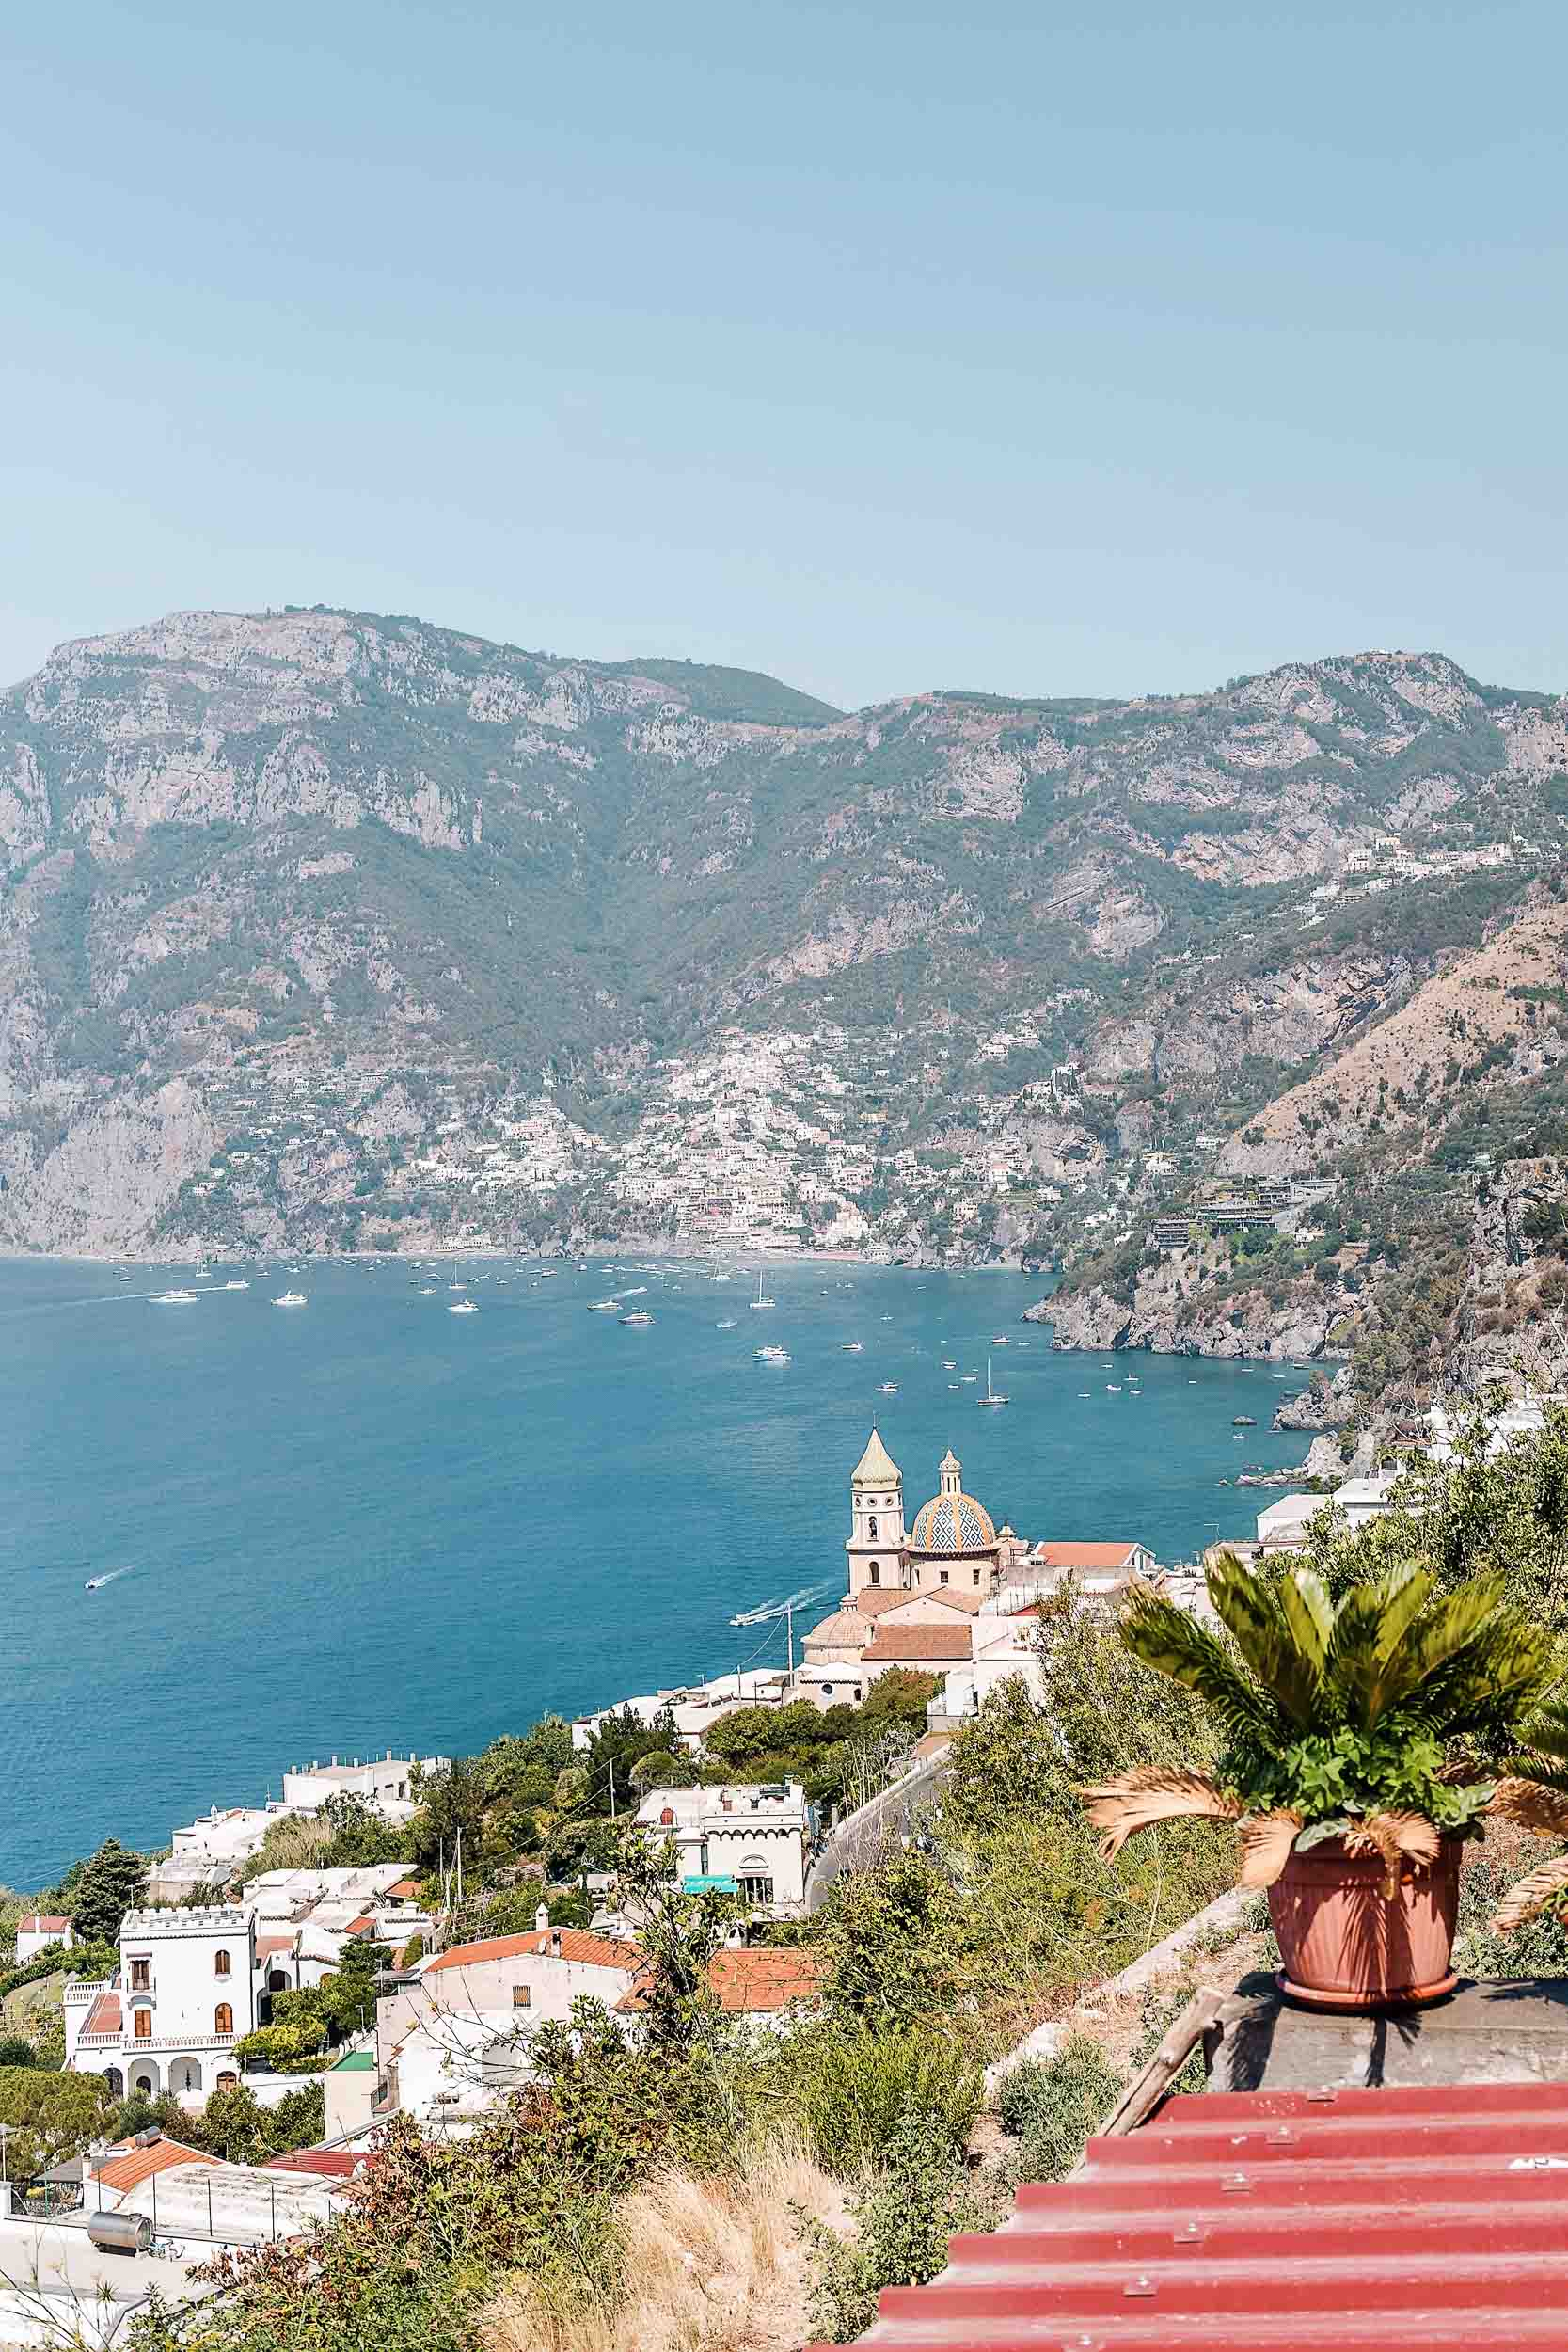 Amalfi Coast Towns: A Photo Guide and Map to the Most ... on genoa map, cagliari map, venice map, lake como map, salerno map, croatia map, spain map, cinque terre map, greece map, sorrento map, france map, umbria map, sicily map, capri map, europe map, italy map, positano map, naples map, tuscany map, turin map,